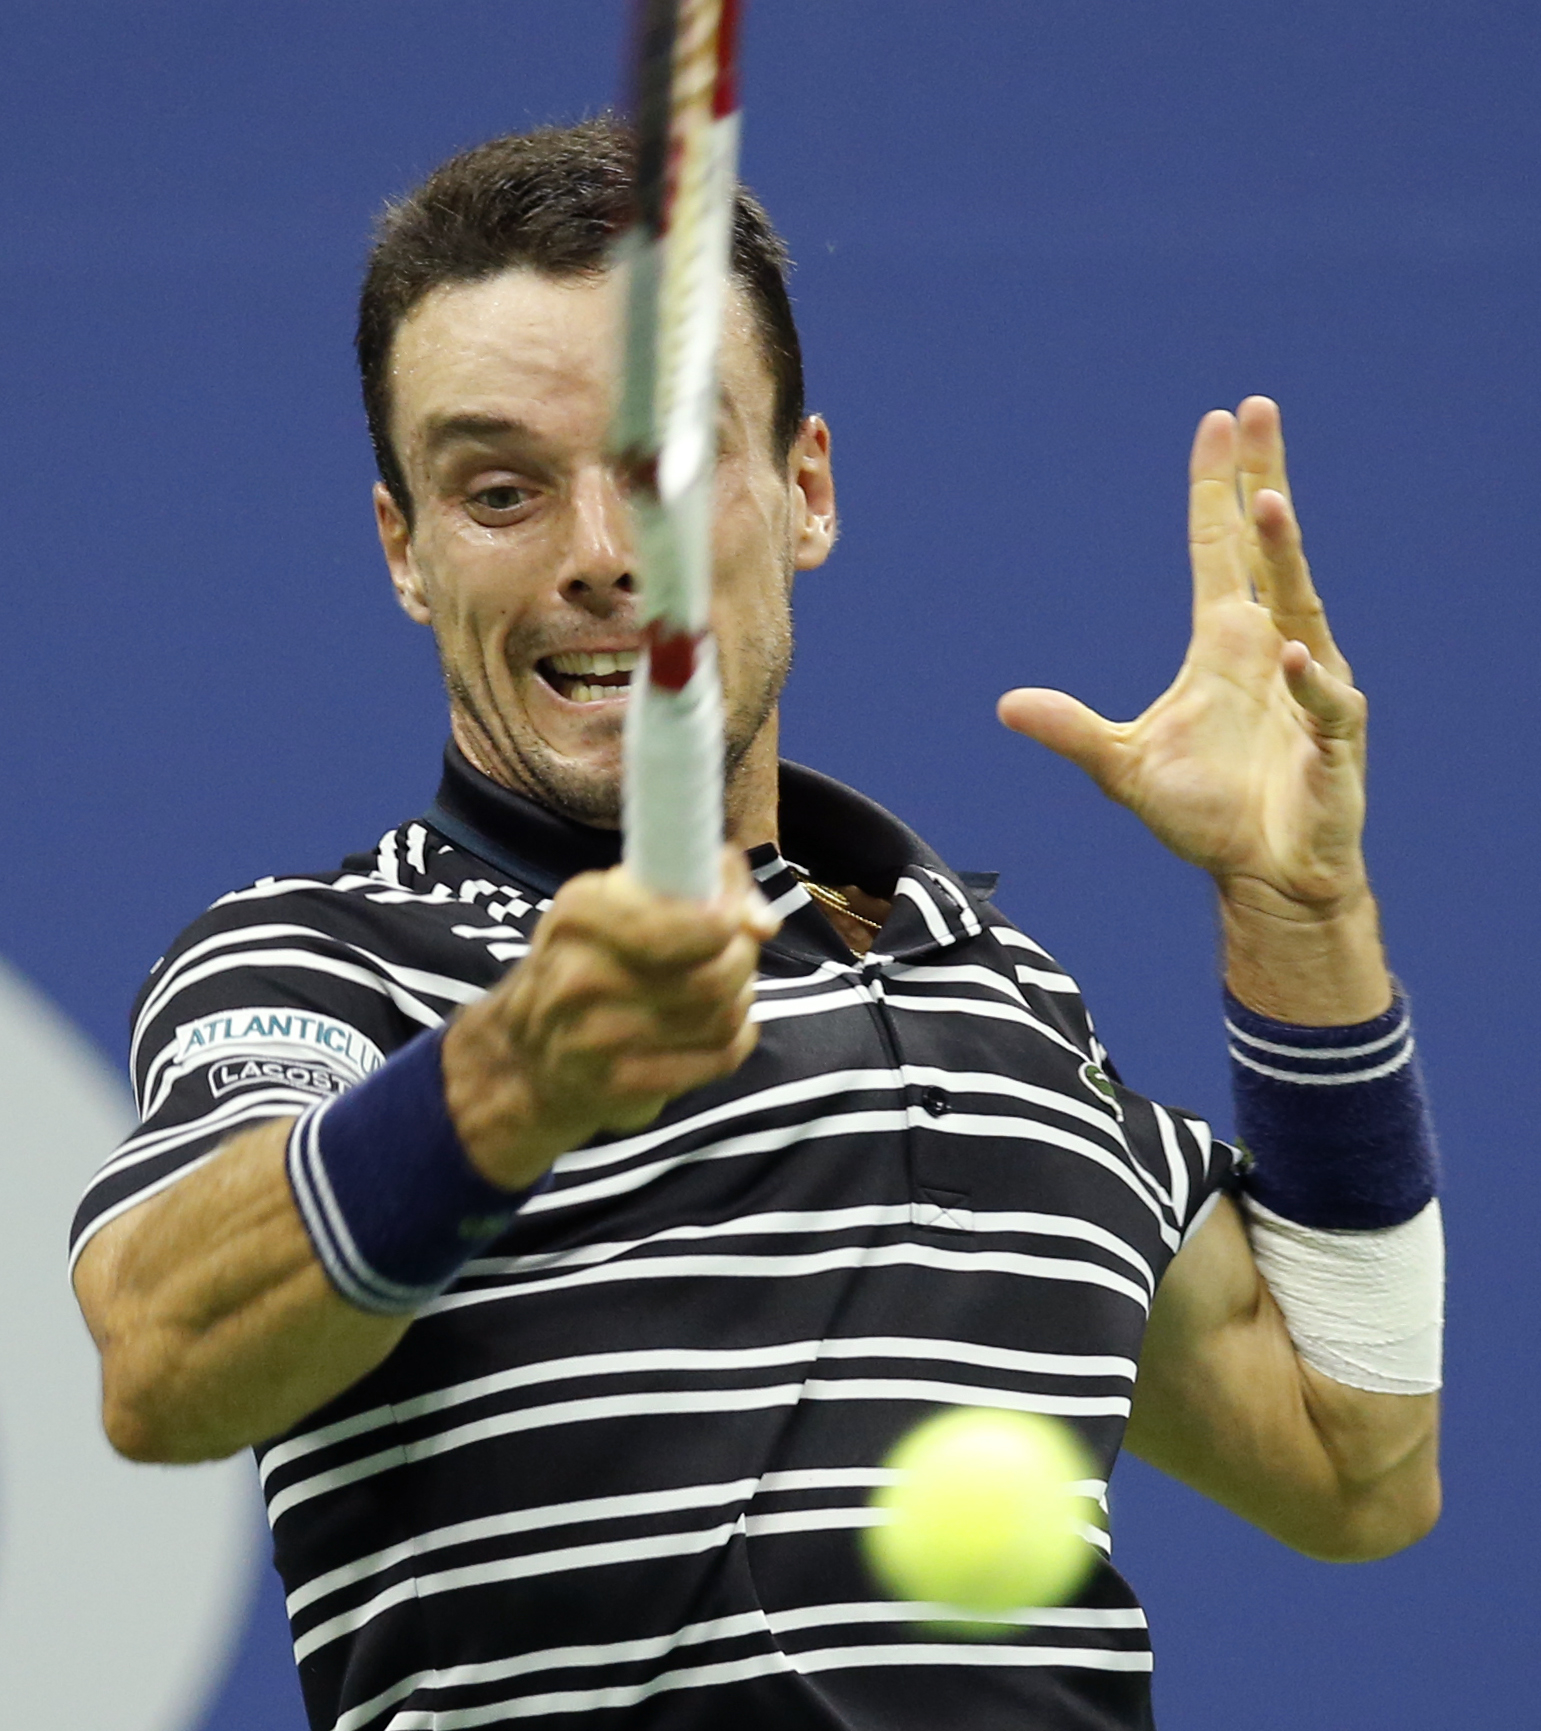 Roberto Bautisa Agut, of Spain, returns the ball during the second set of his fourth round match against Novak Djokovic, of Serbia, at the U.S. Open tennis tournament in New York, Sunday, Sept. 6, 2015. (AP Photo/Kathy Willens)